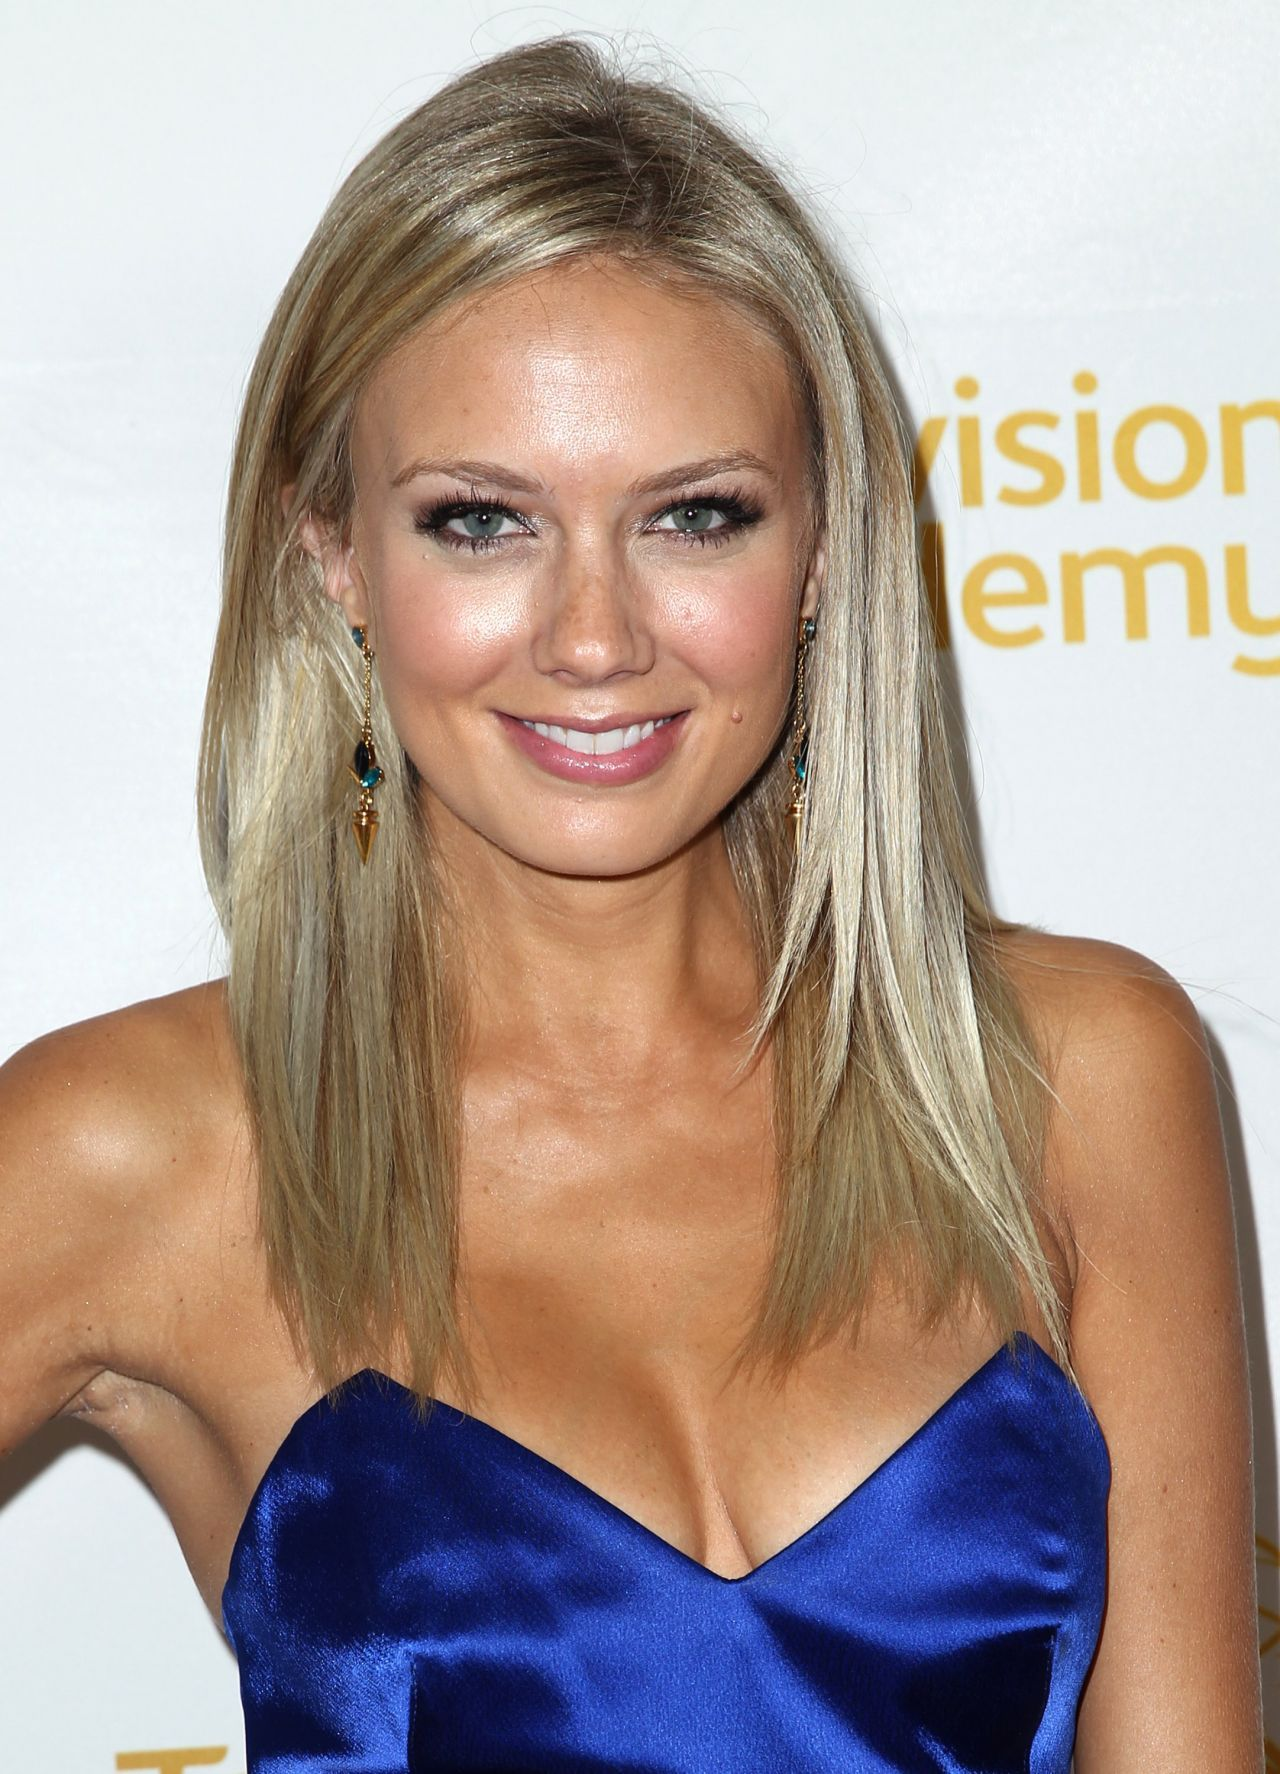 Melissa ordway sexy lips